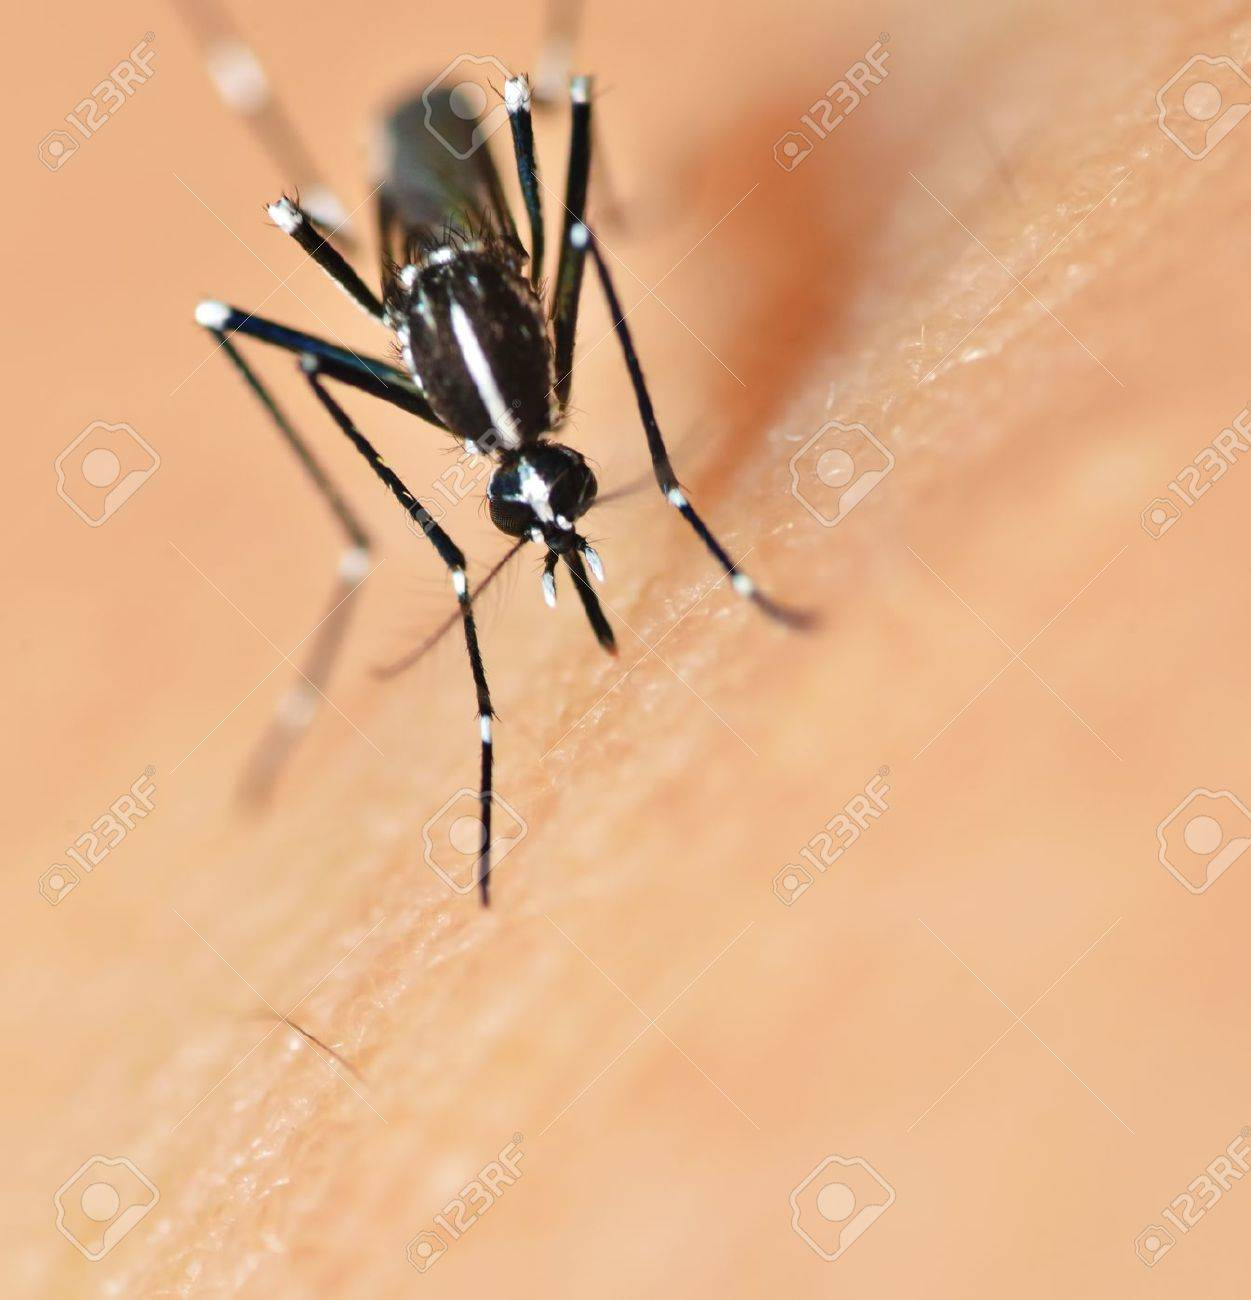 Mosquito bite on human skin Stock Photo - 11209065